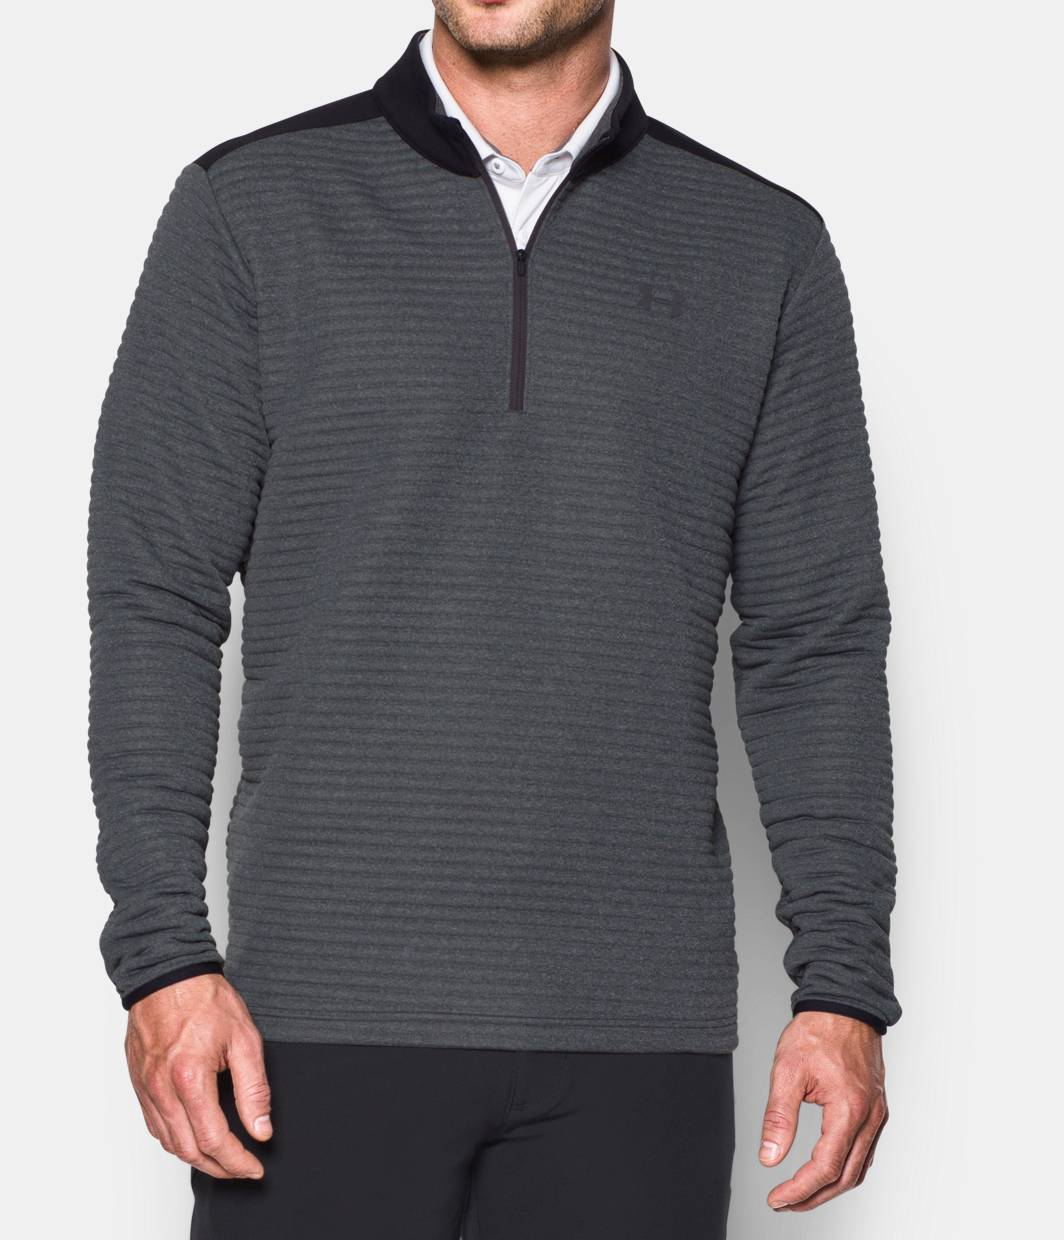 Mens Golf Polos  Shirts Under Armour US - Us zip code full